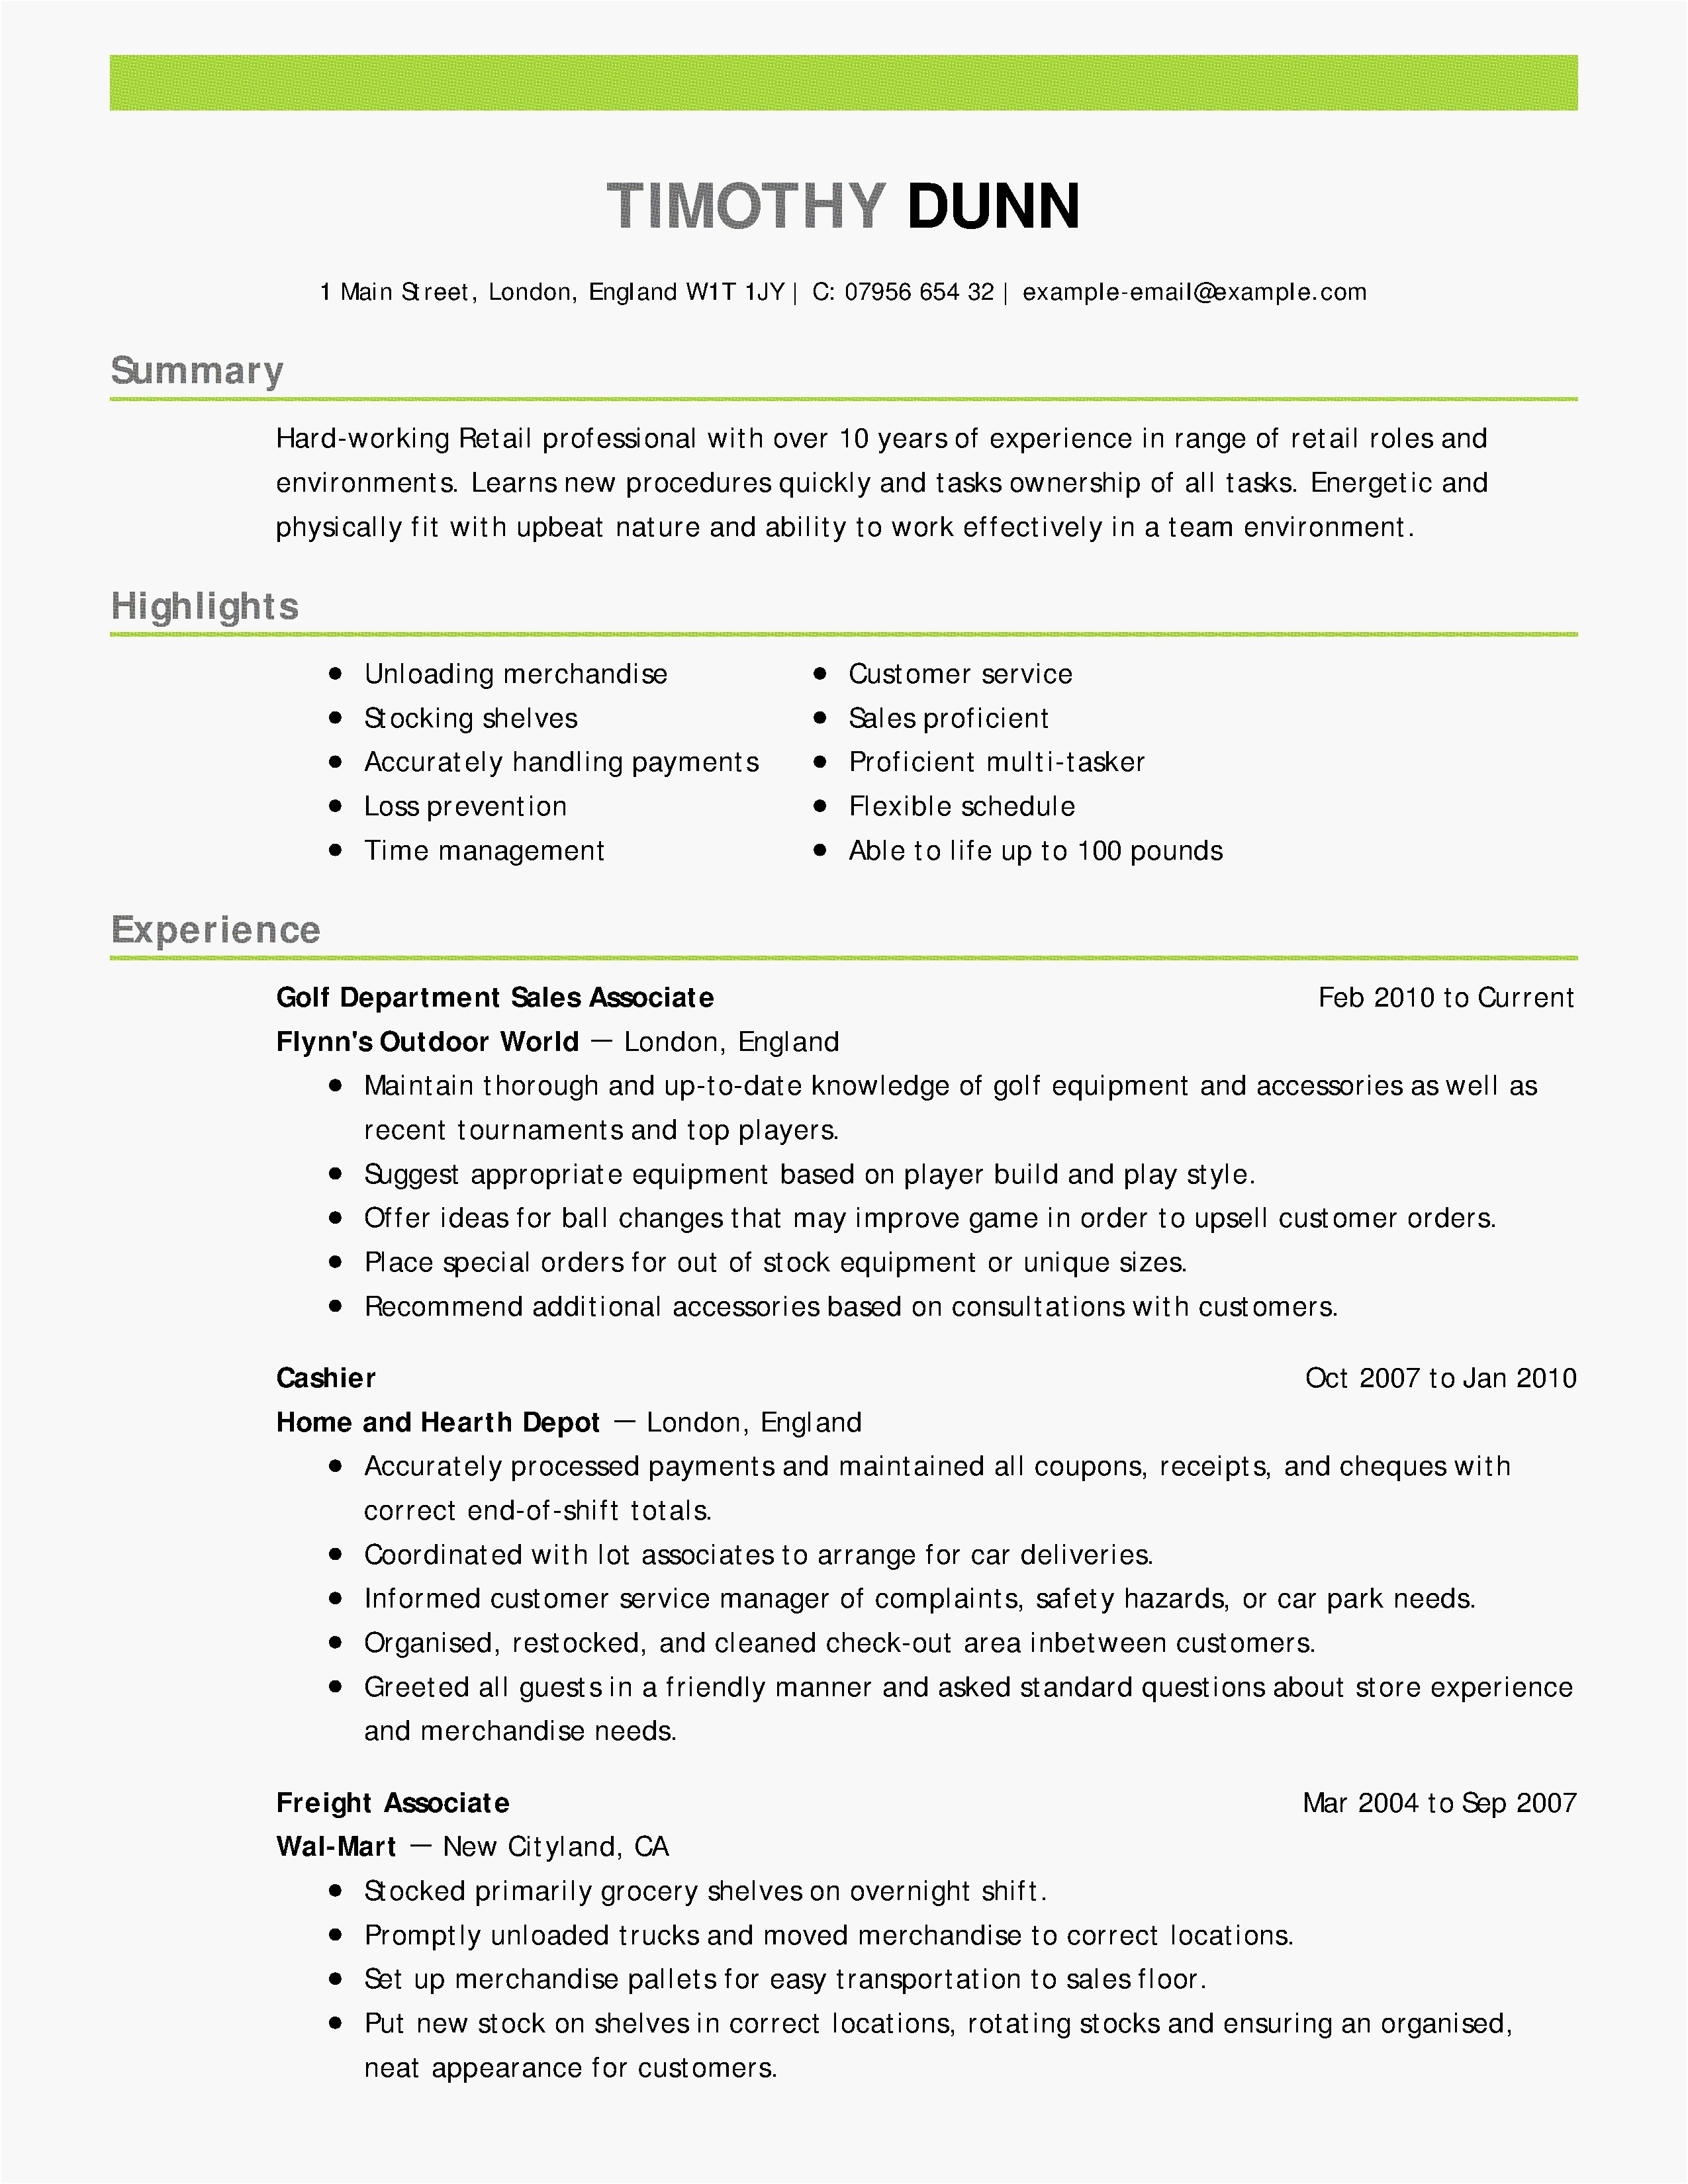 Make My Resume - Entry Level Cover Letter Template Free Examples